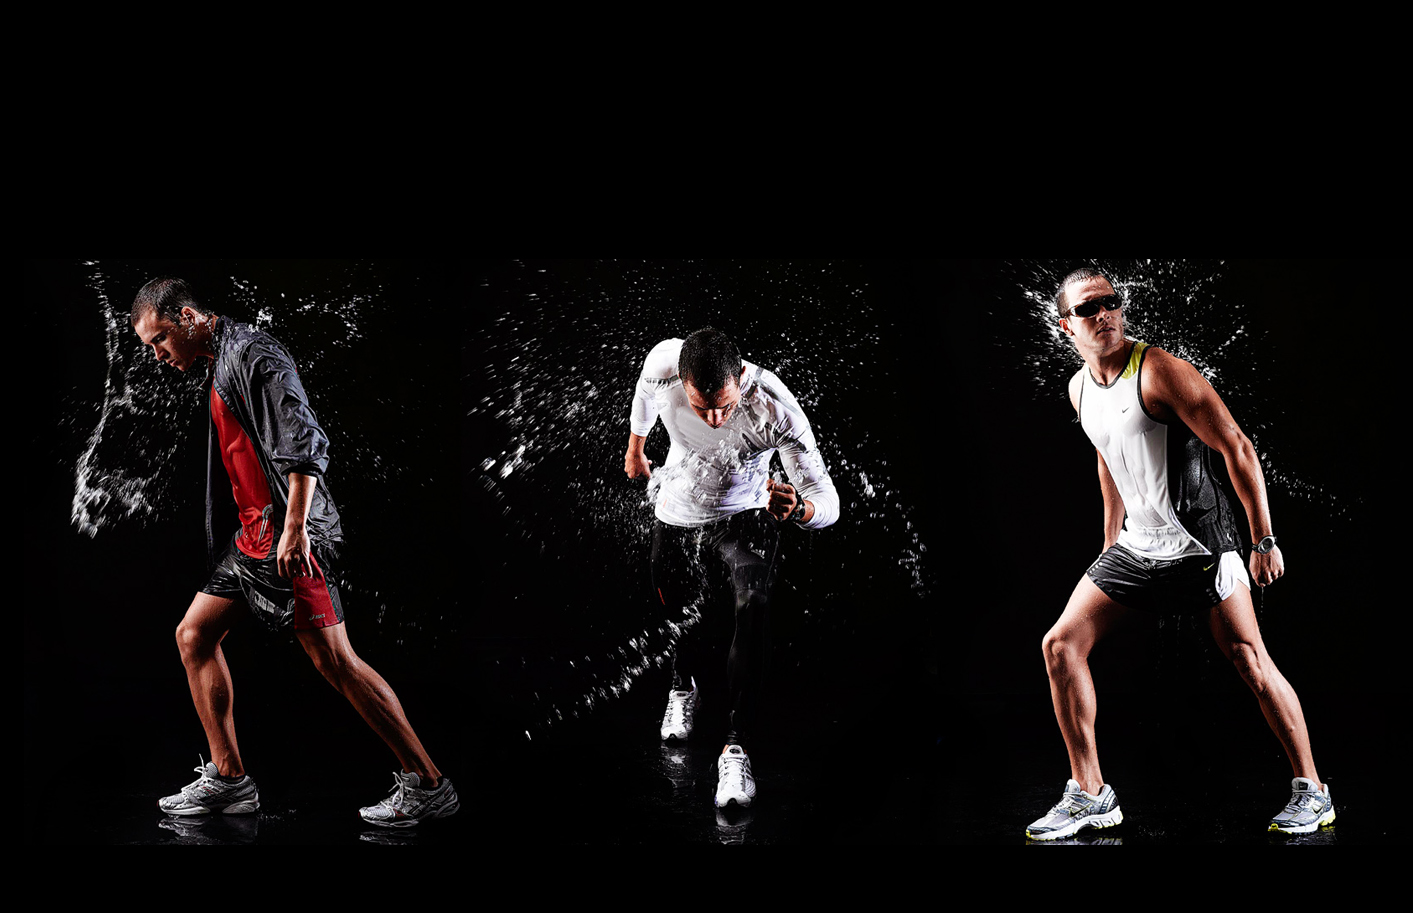 Sports adverting and active wear photography for magazine and editorial action